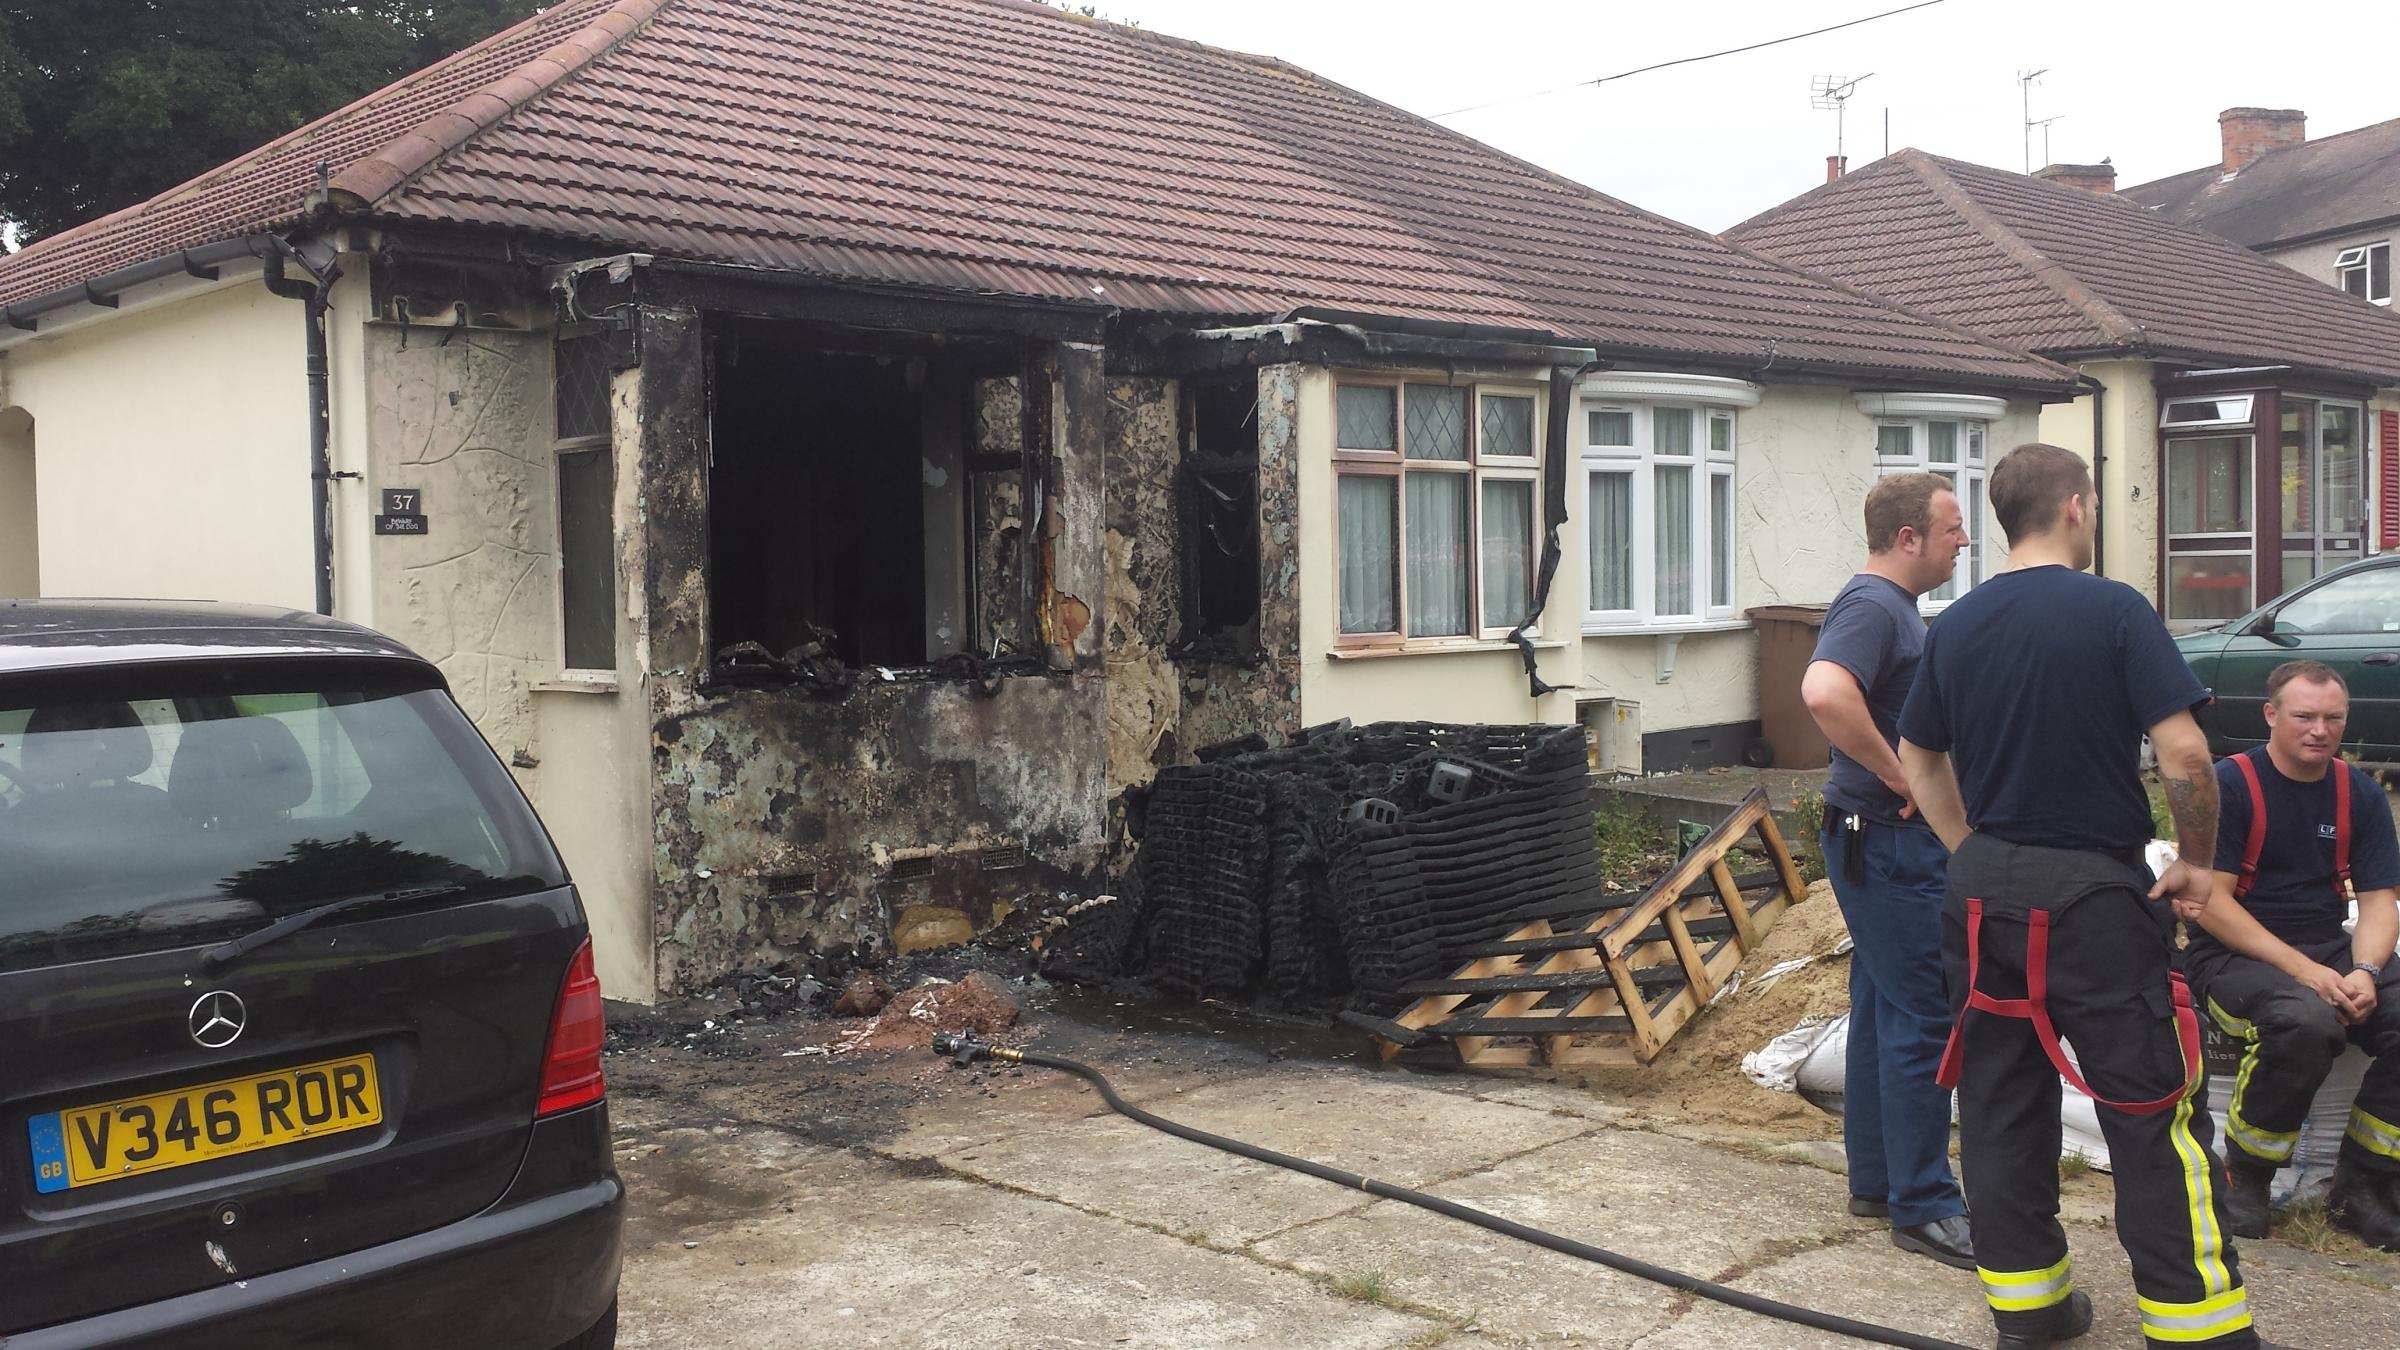 Fire guts house and melts car- 'if it happened at night I would be dead' says woman